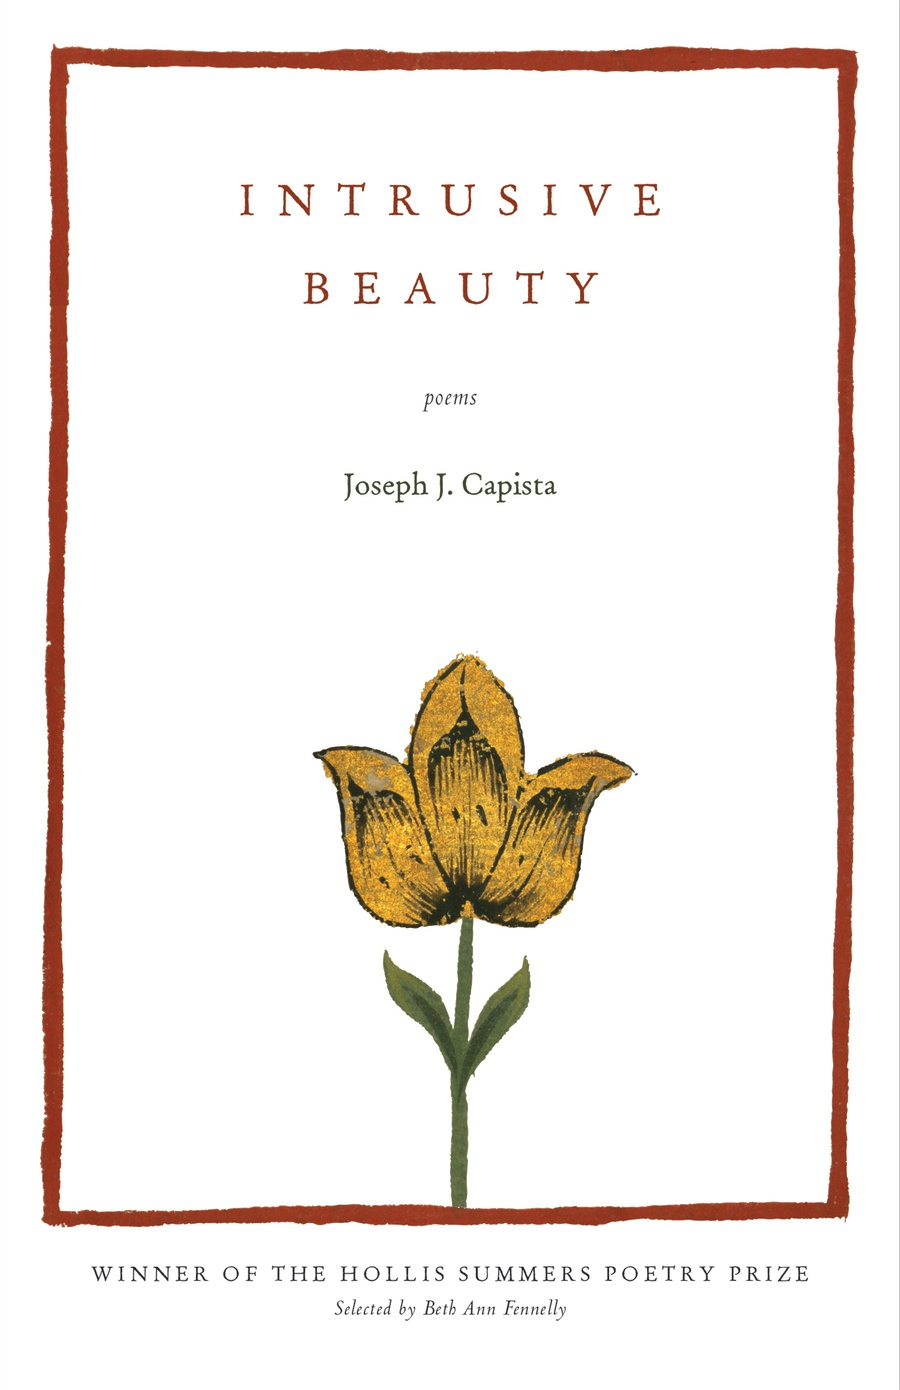 The front cover of Intrusive Beauty